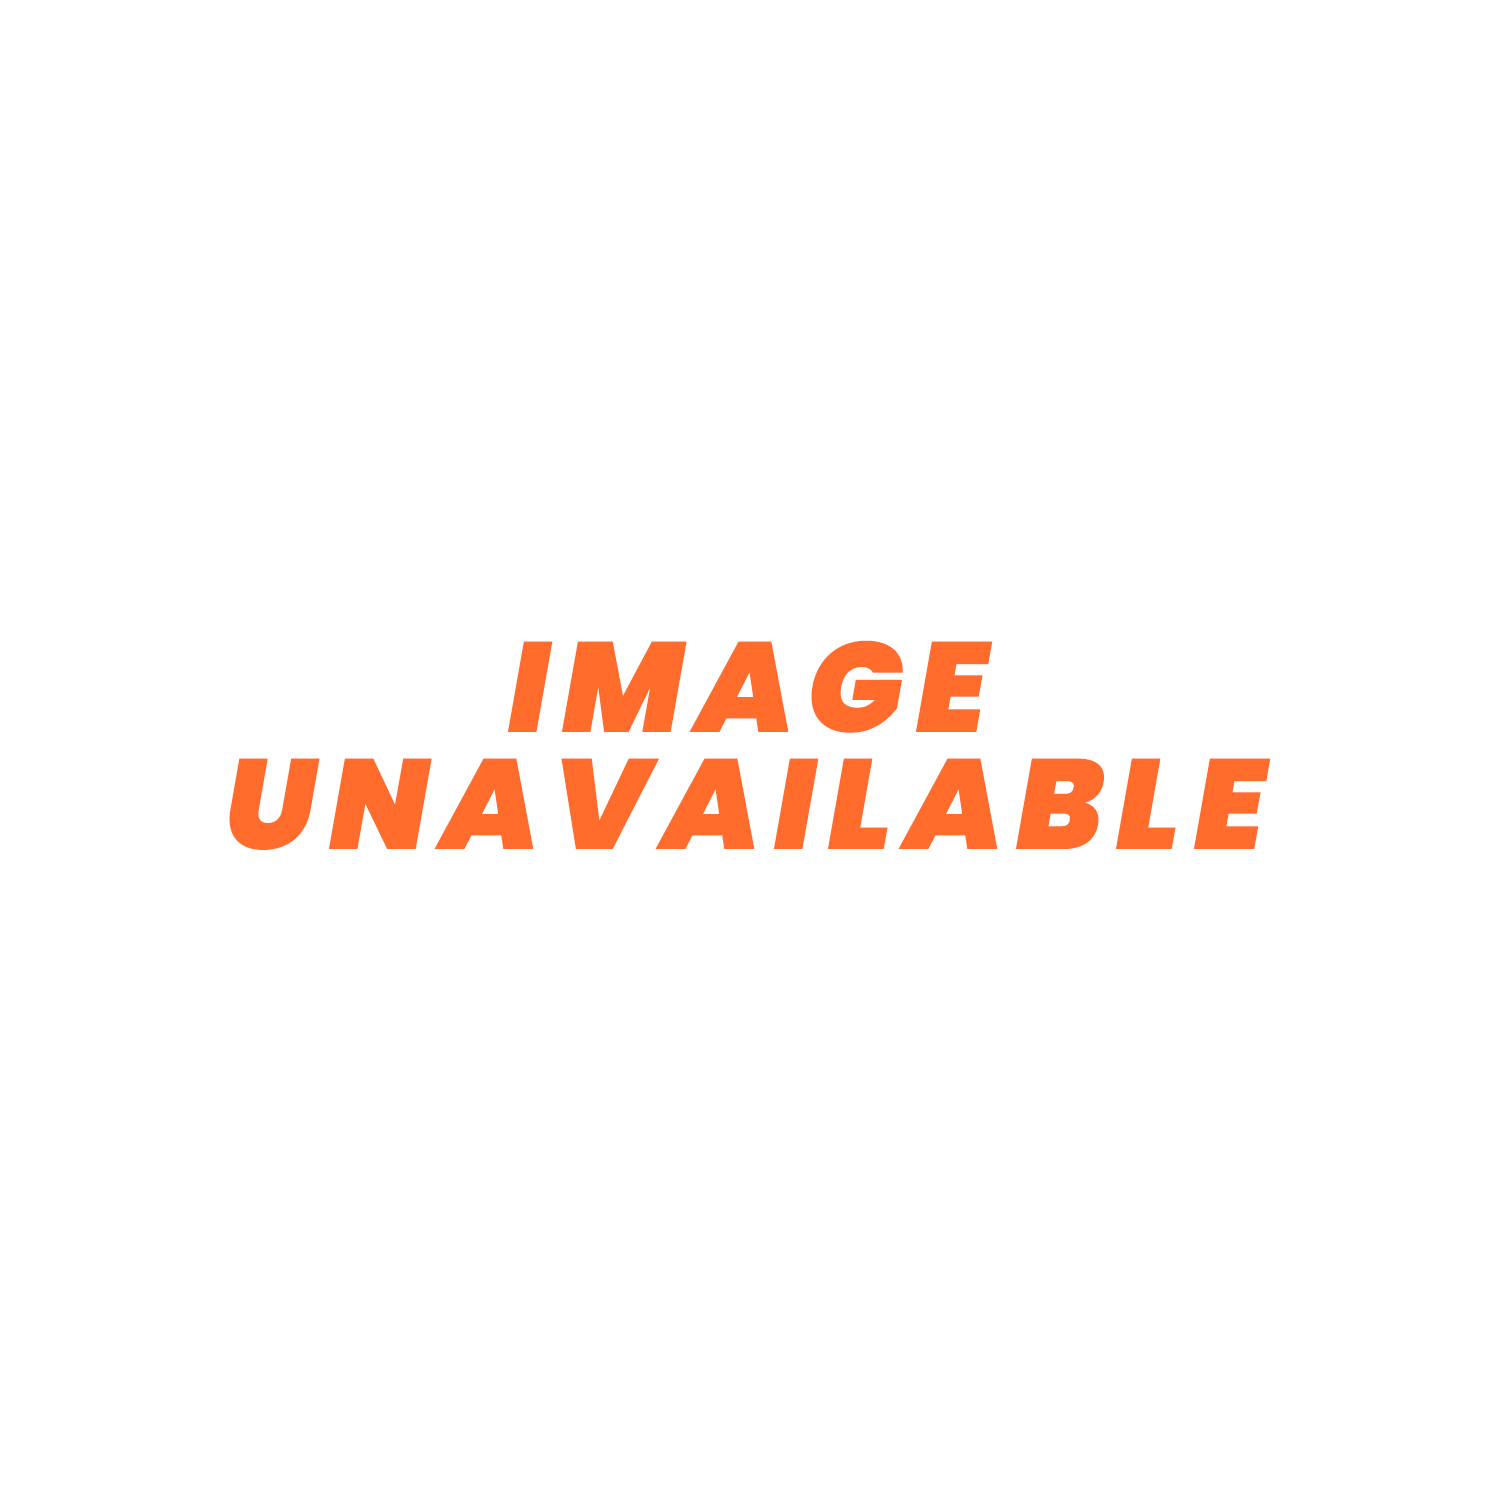 Standard Blade Fuse Box With Leds